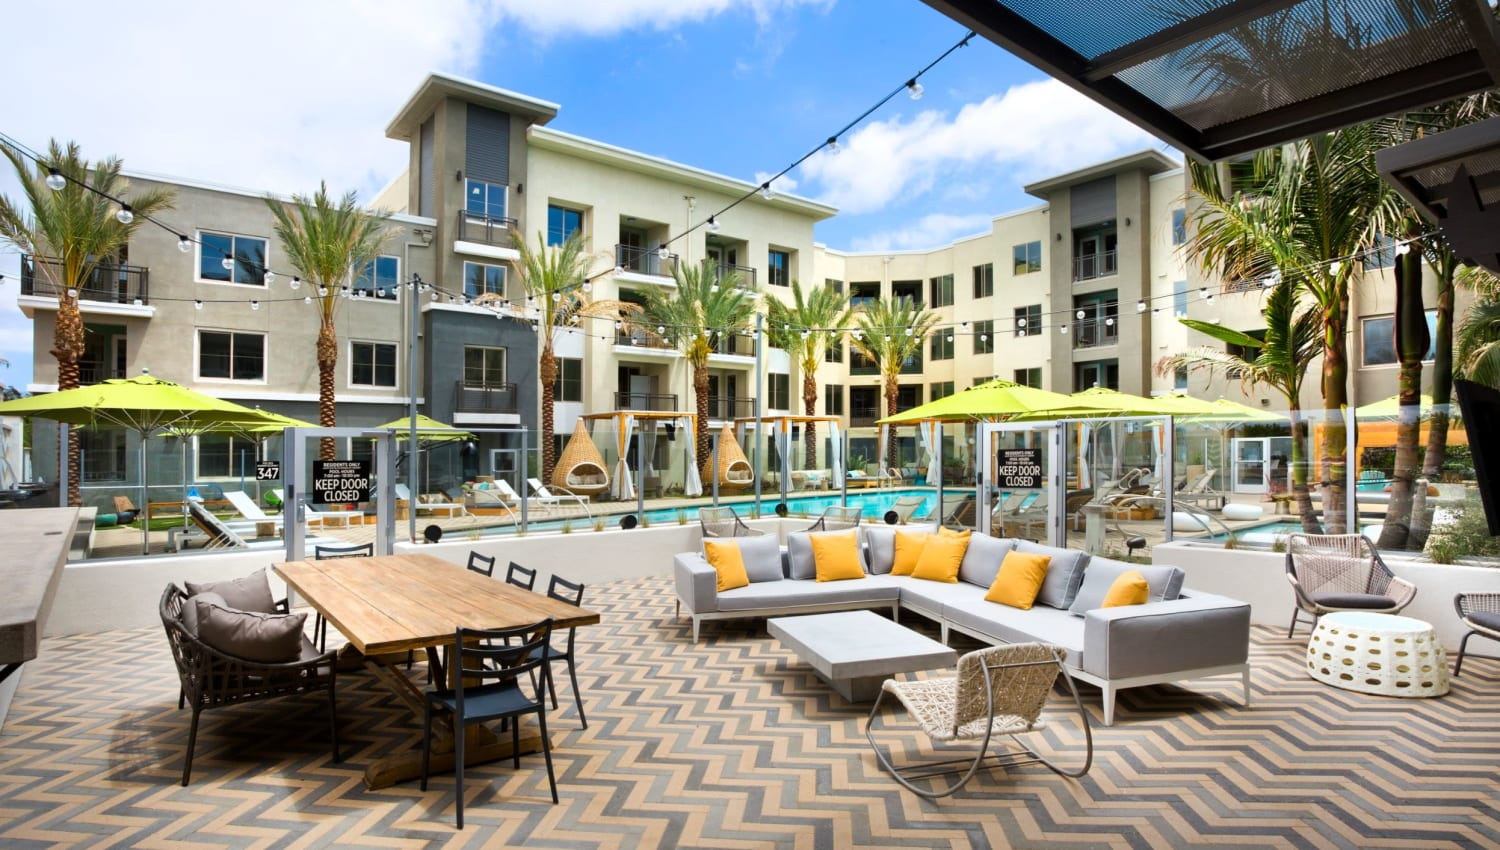 Pool patio for residents at Olympus Corsair in San Diego, California